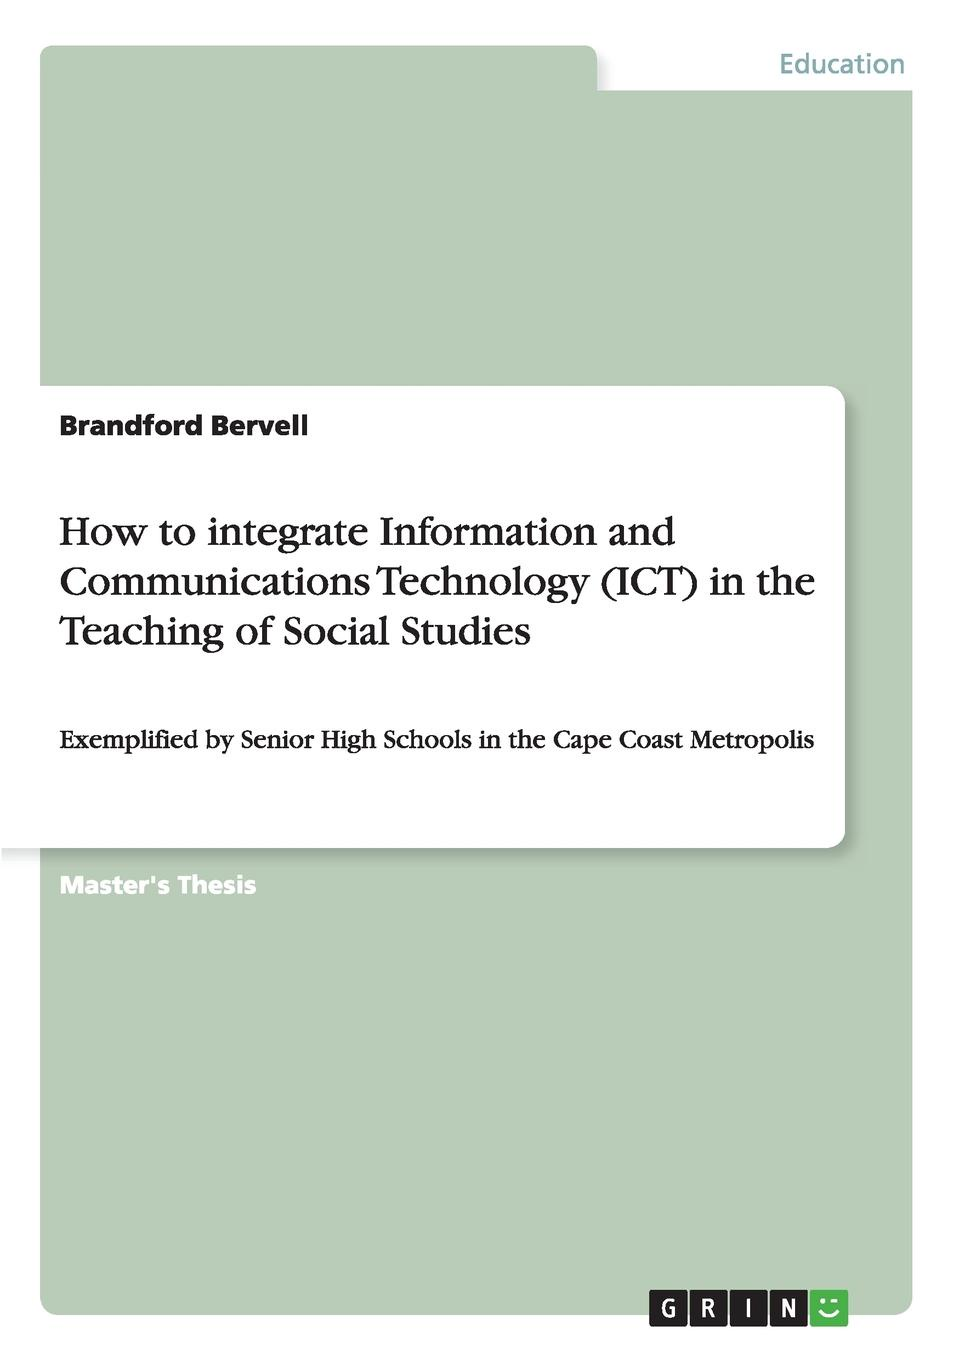 Brandford Bervell How to integrate Information and Communications Technology (ICT) in the Teaching of Social Studies w h ittelson ames demonstrations in perception a guide to their construction and use